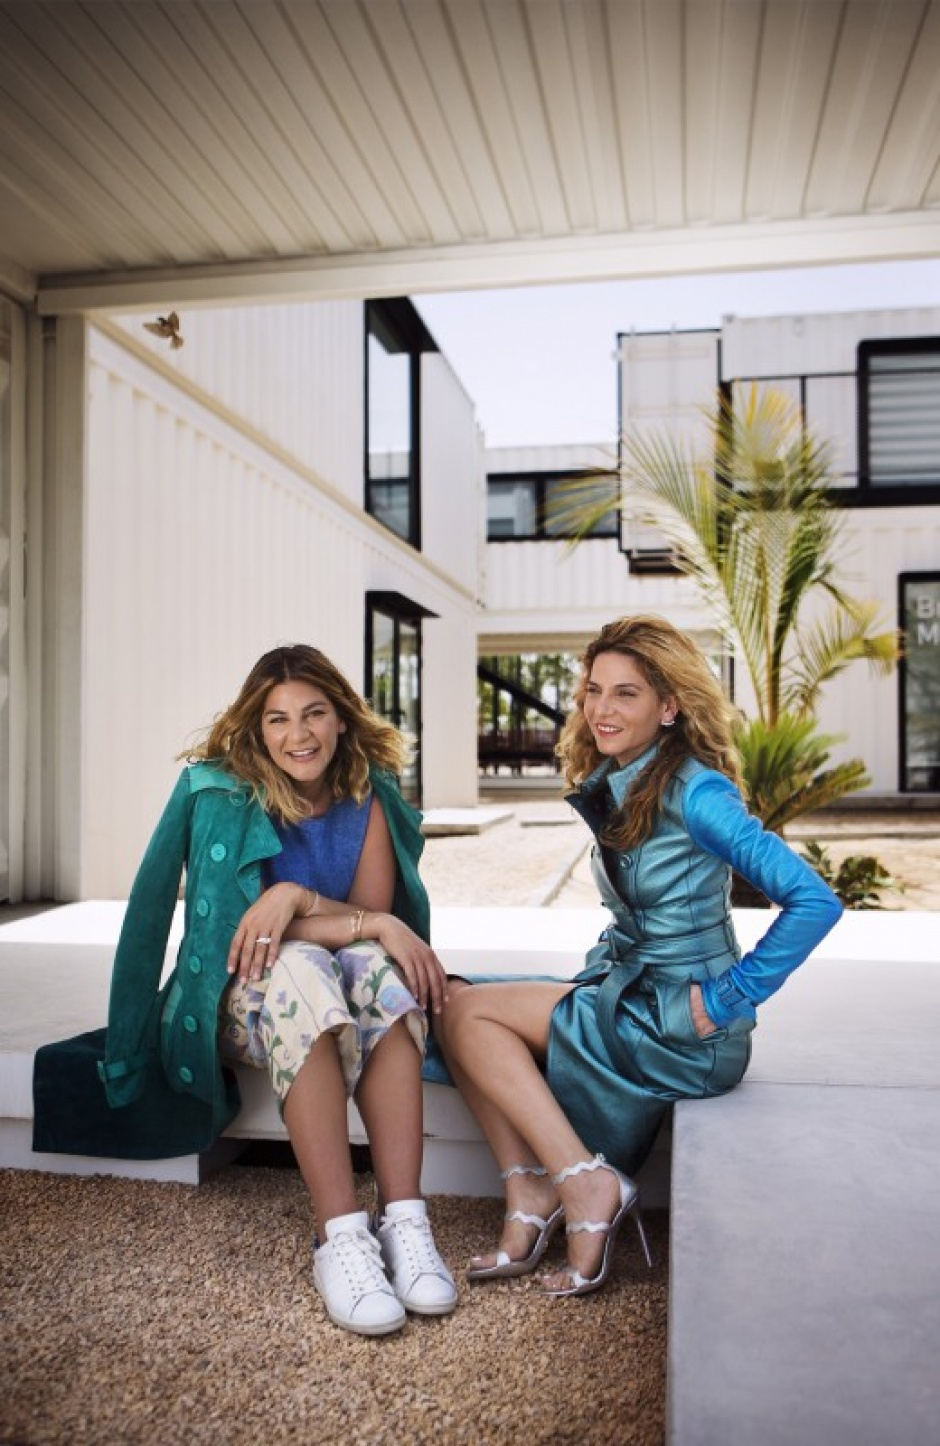 Burberry trench coat Ayah and Maliha Tabari The Art of the Trench d3 Design District